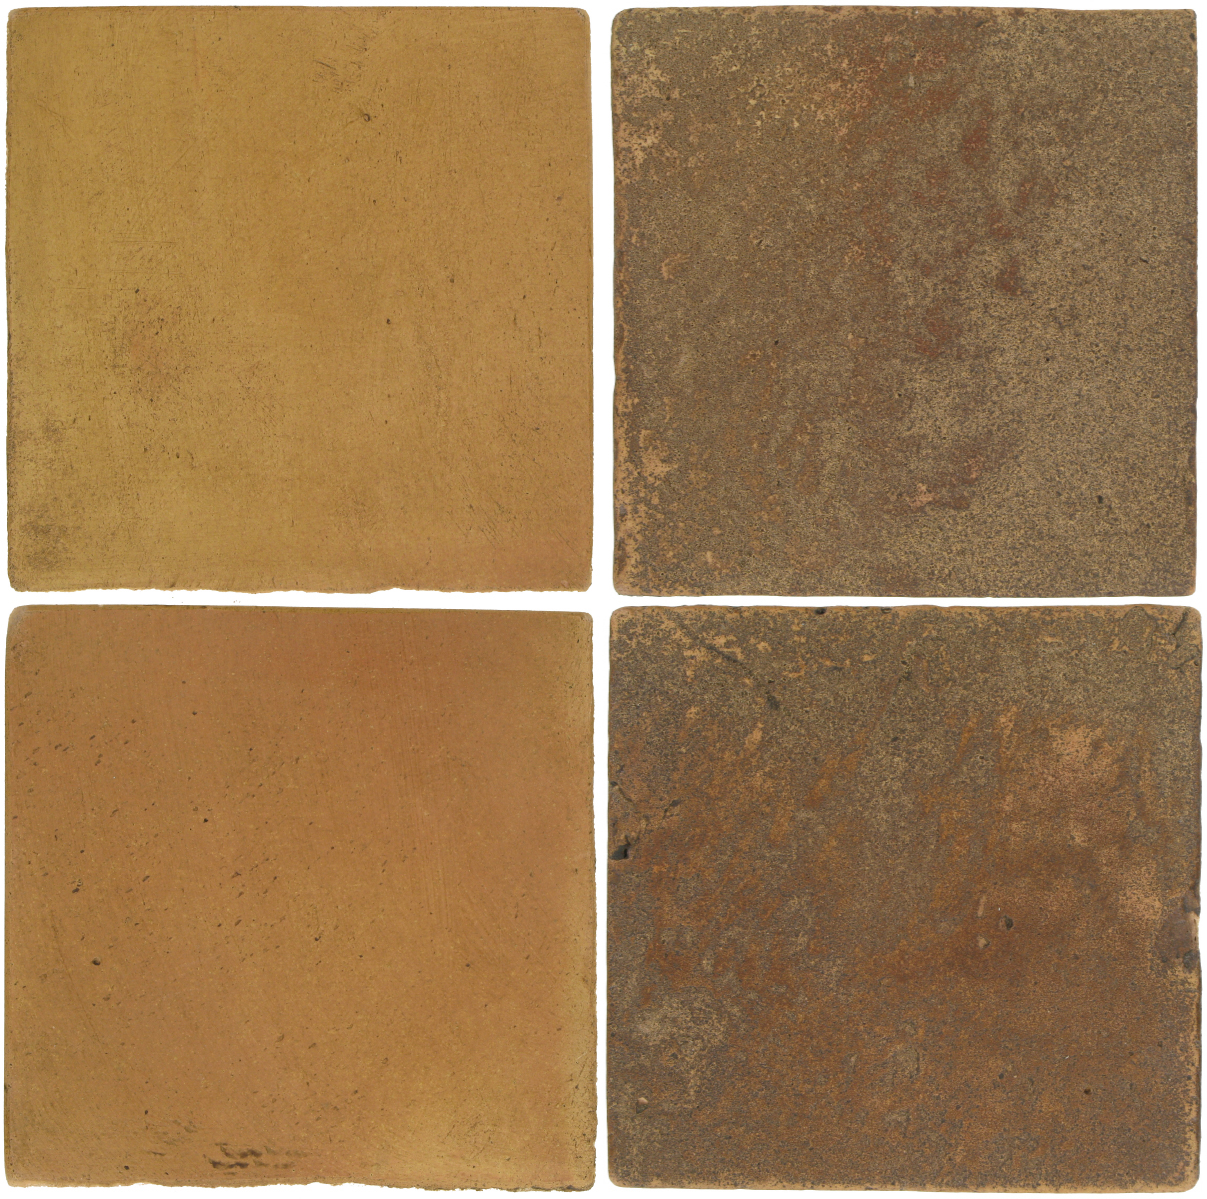 Pedralbes Antique Terracotta  2 Color Combinations  OHS-PSSW Siena Wheat + VTG-PSCM Camel Brown